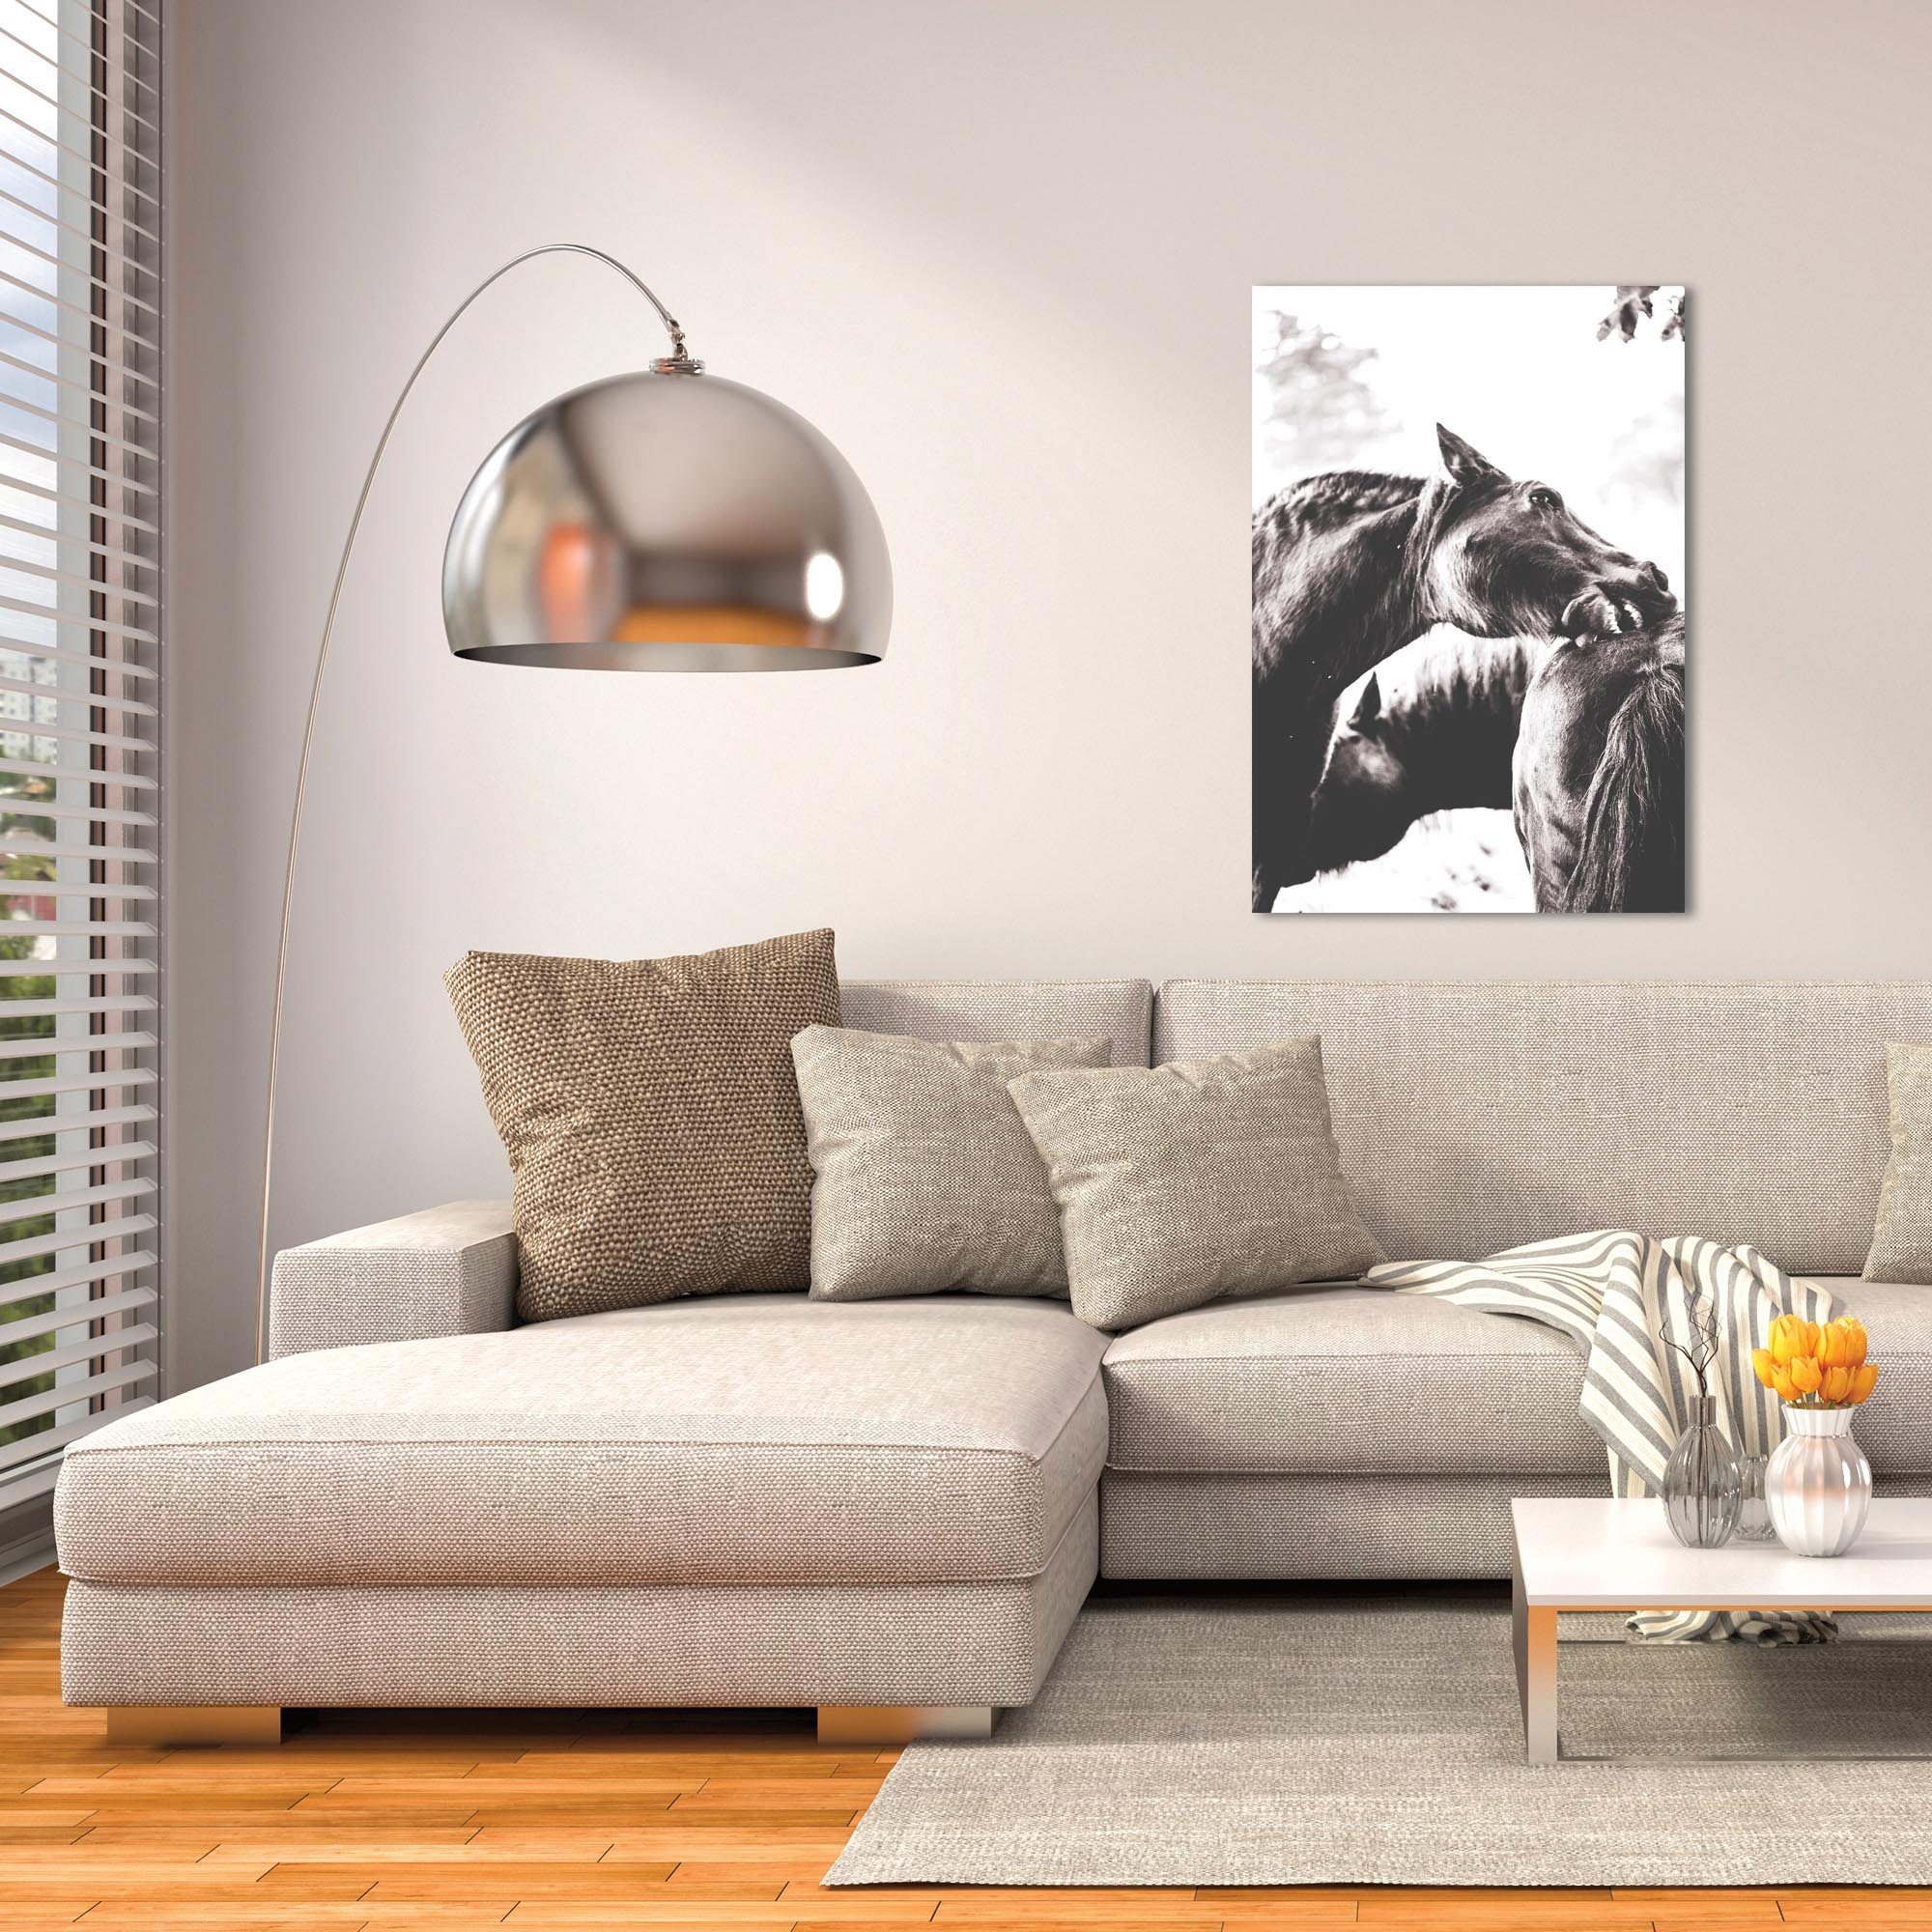 Contemporary Wall Art 'Horse Nibble' - Wildlife Decor on Metal or Plexiglass - Lifestyle View